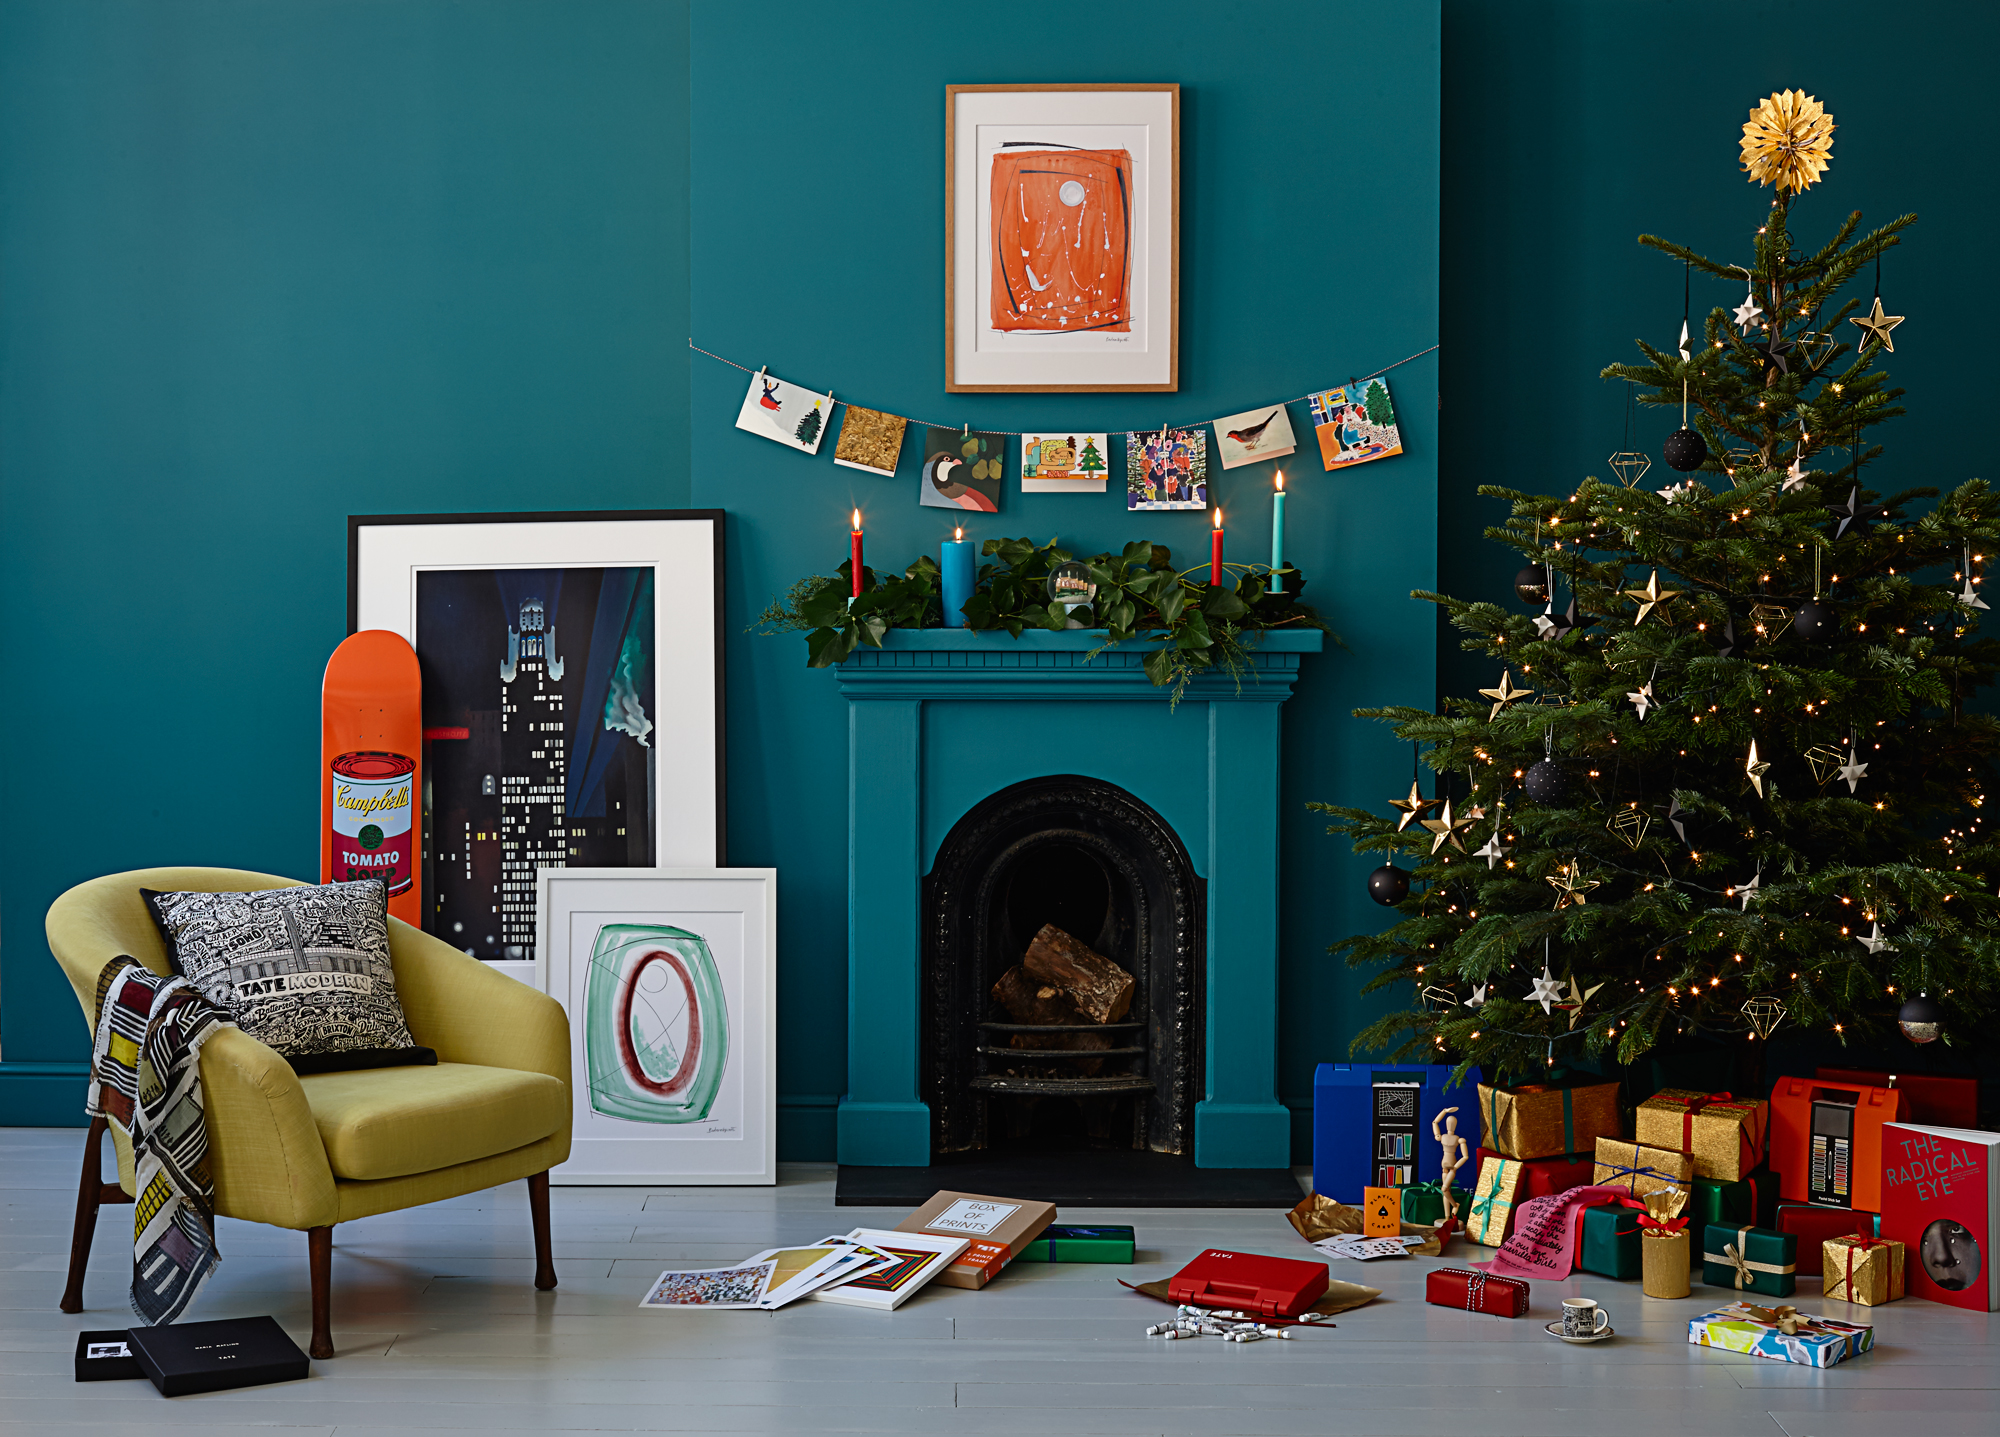 Photography Joanna HendersonStill Christmas shopping  Find the perfect art gifts   Tate. Living Room Glasgow Christmas Menu. Home Design Ideas